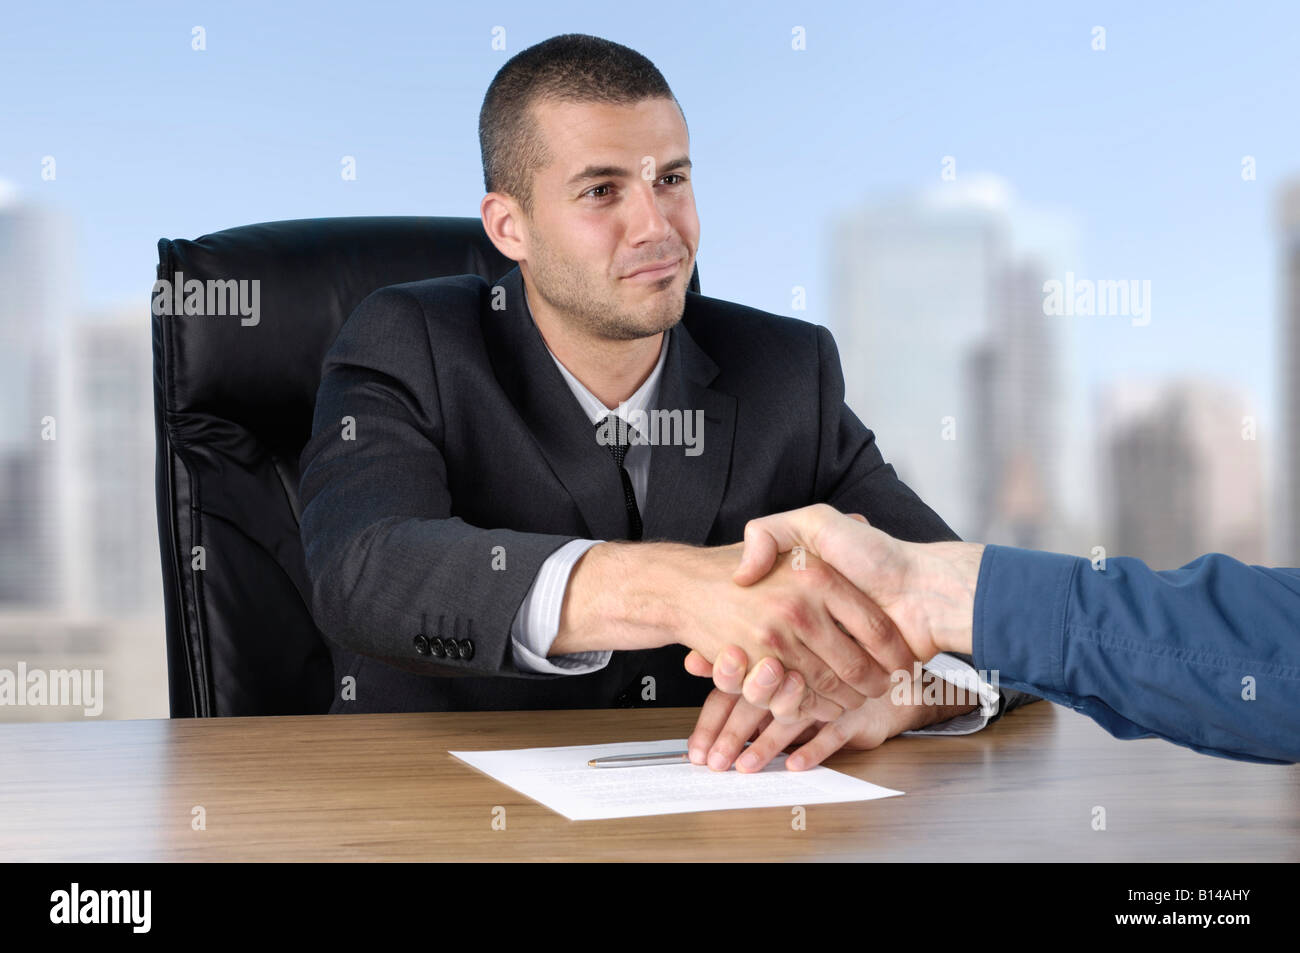 Businessman shaking hands with a client Stock Photo